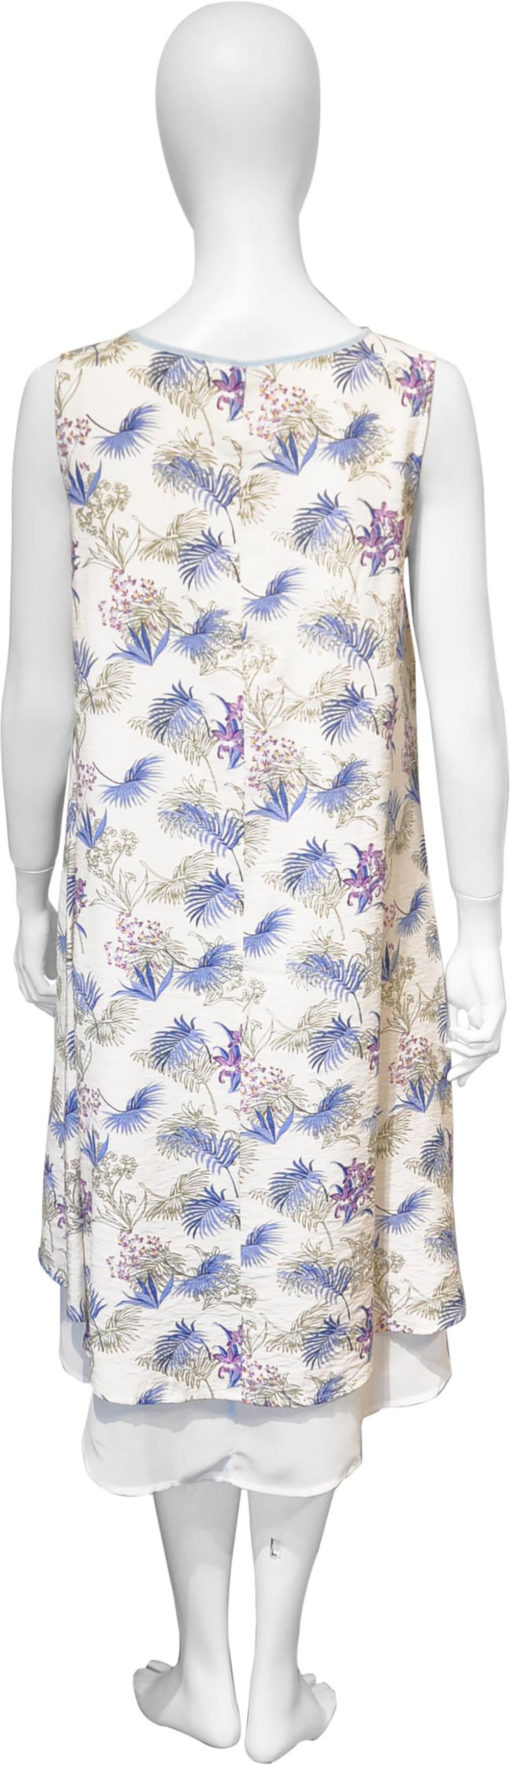 feather printed blue dress- back